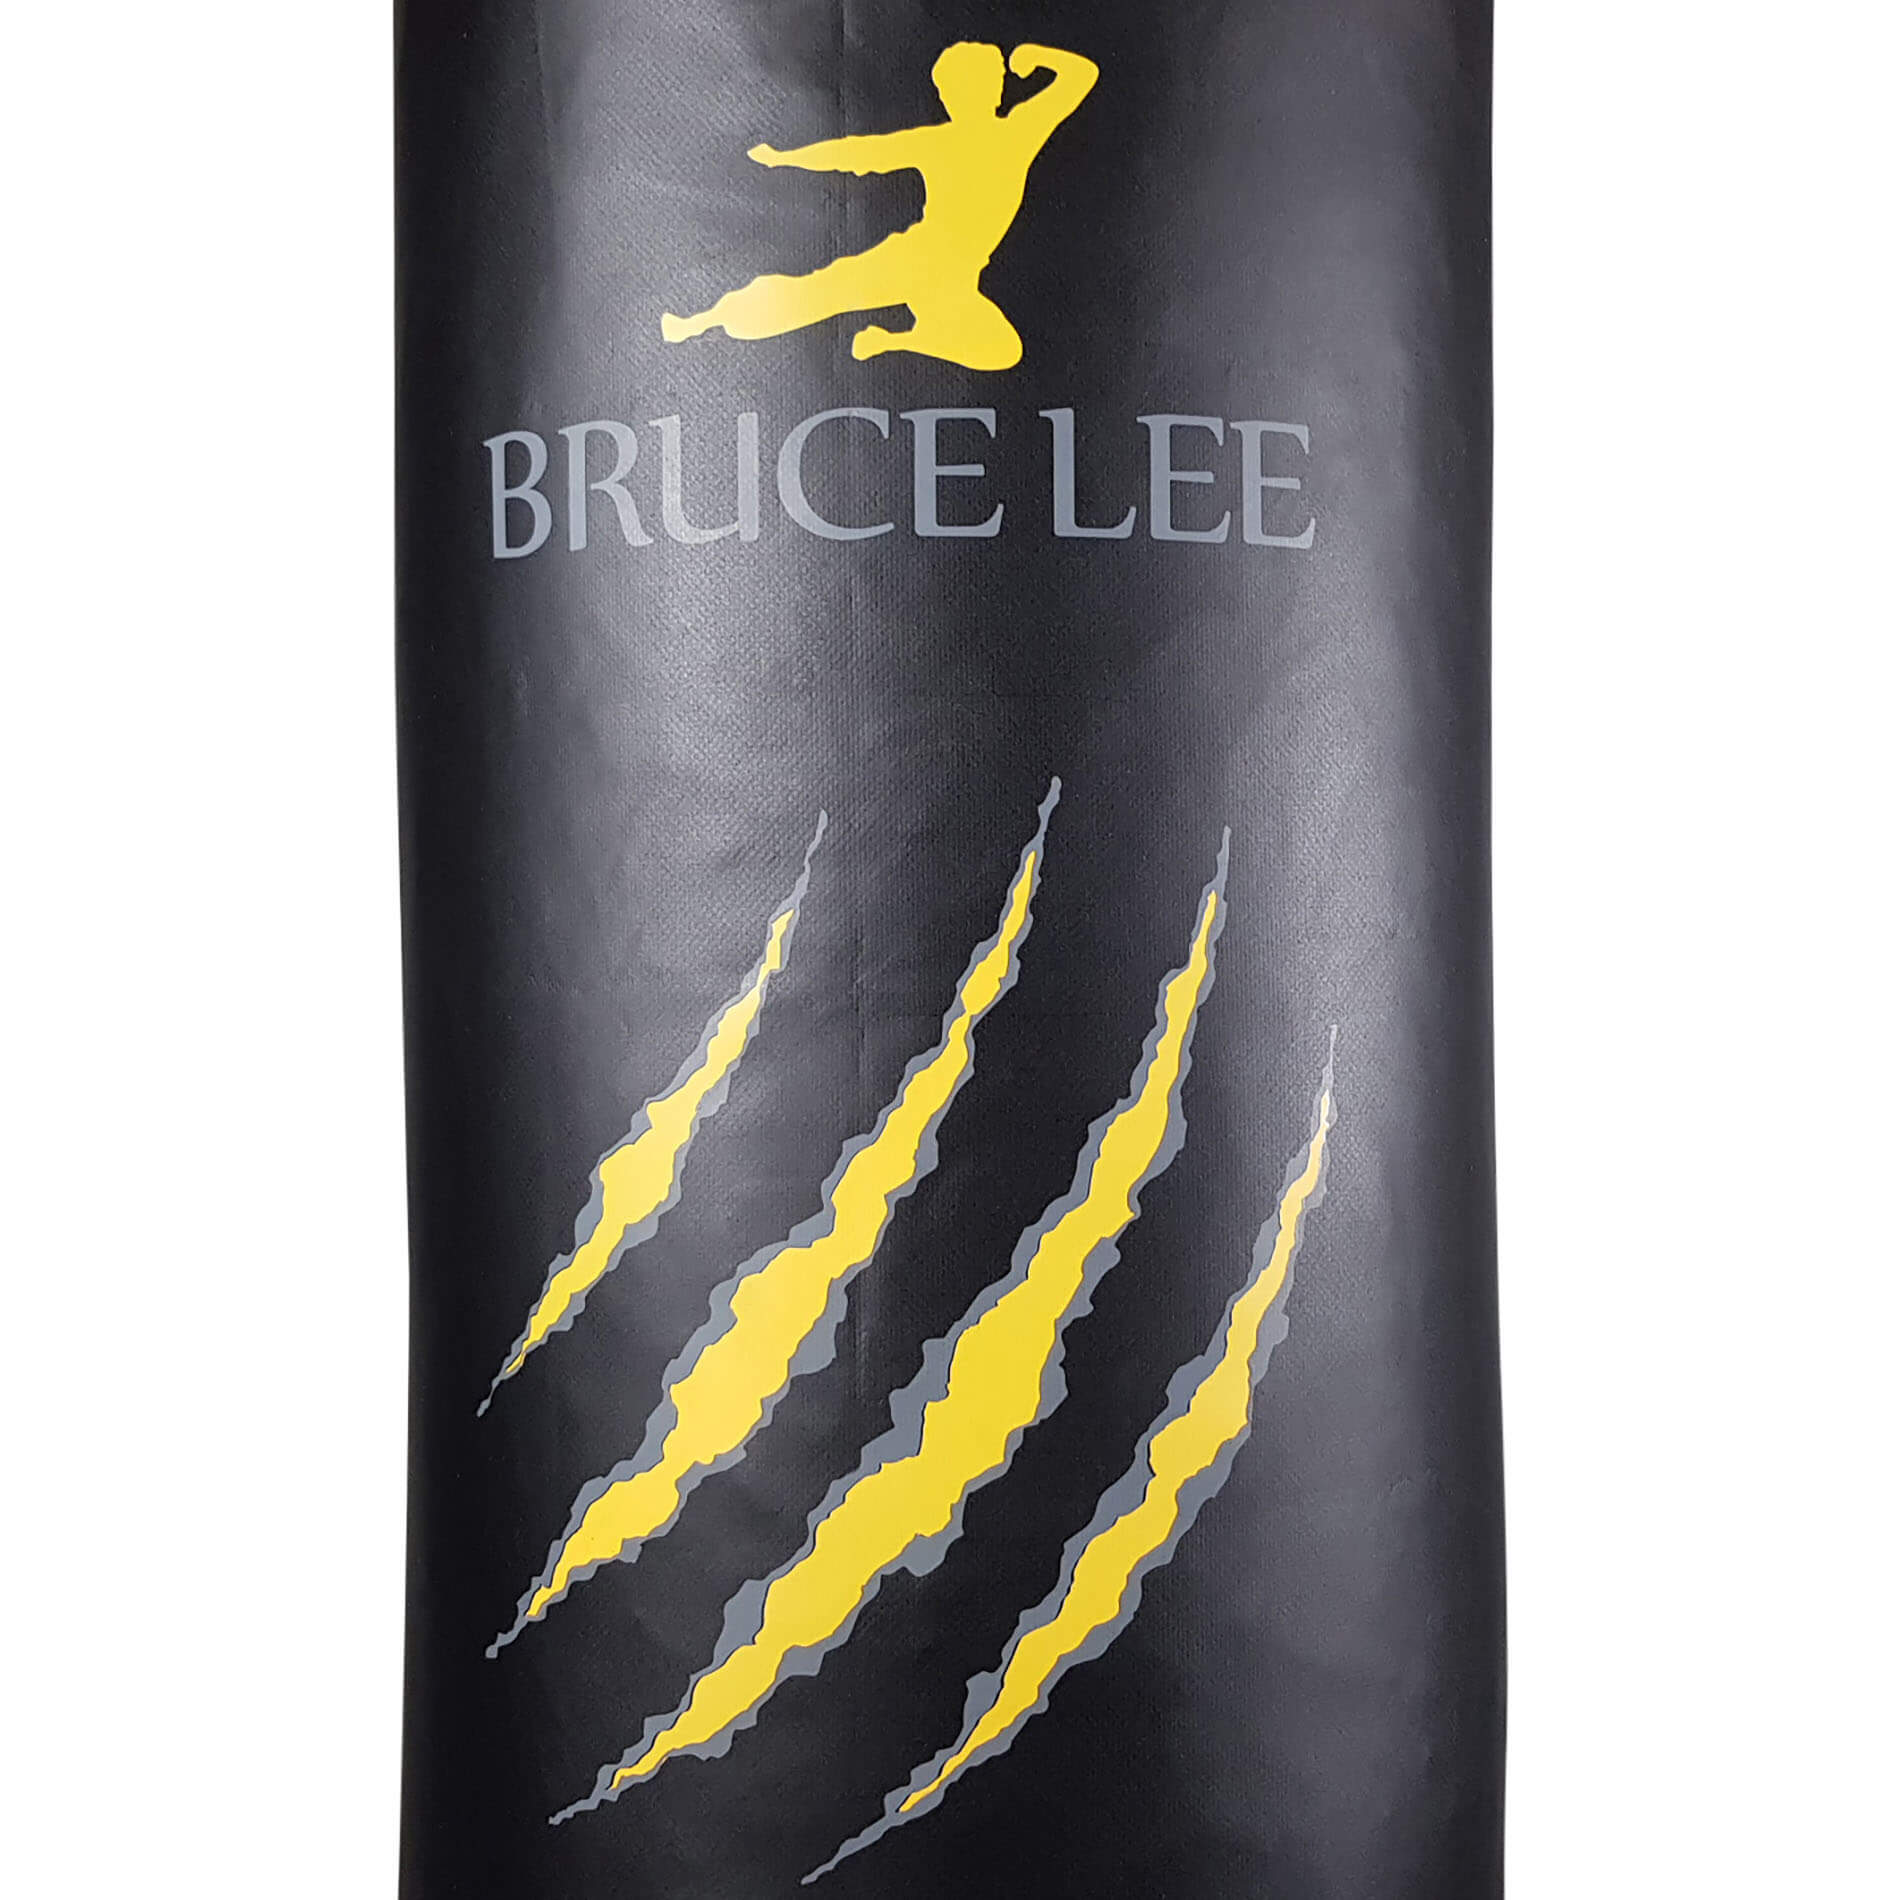 Bruce Lee Boxing Bag Filled with Chain